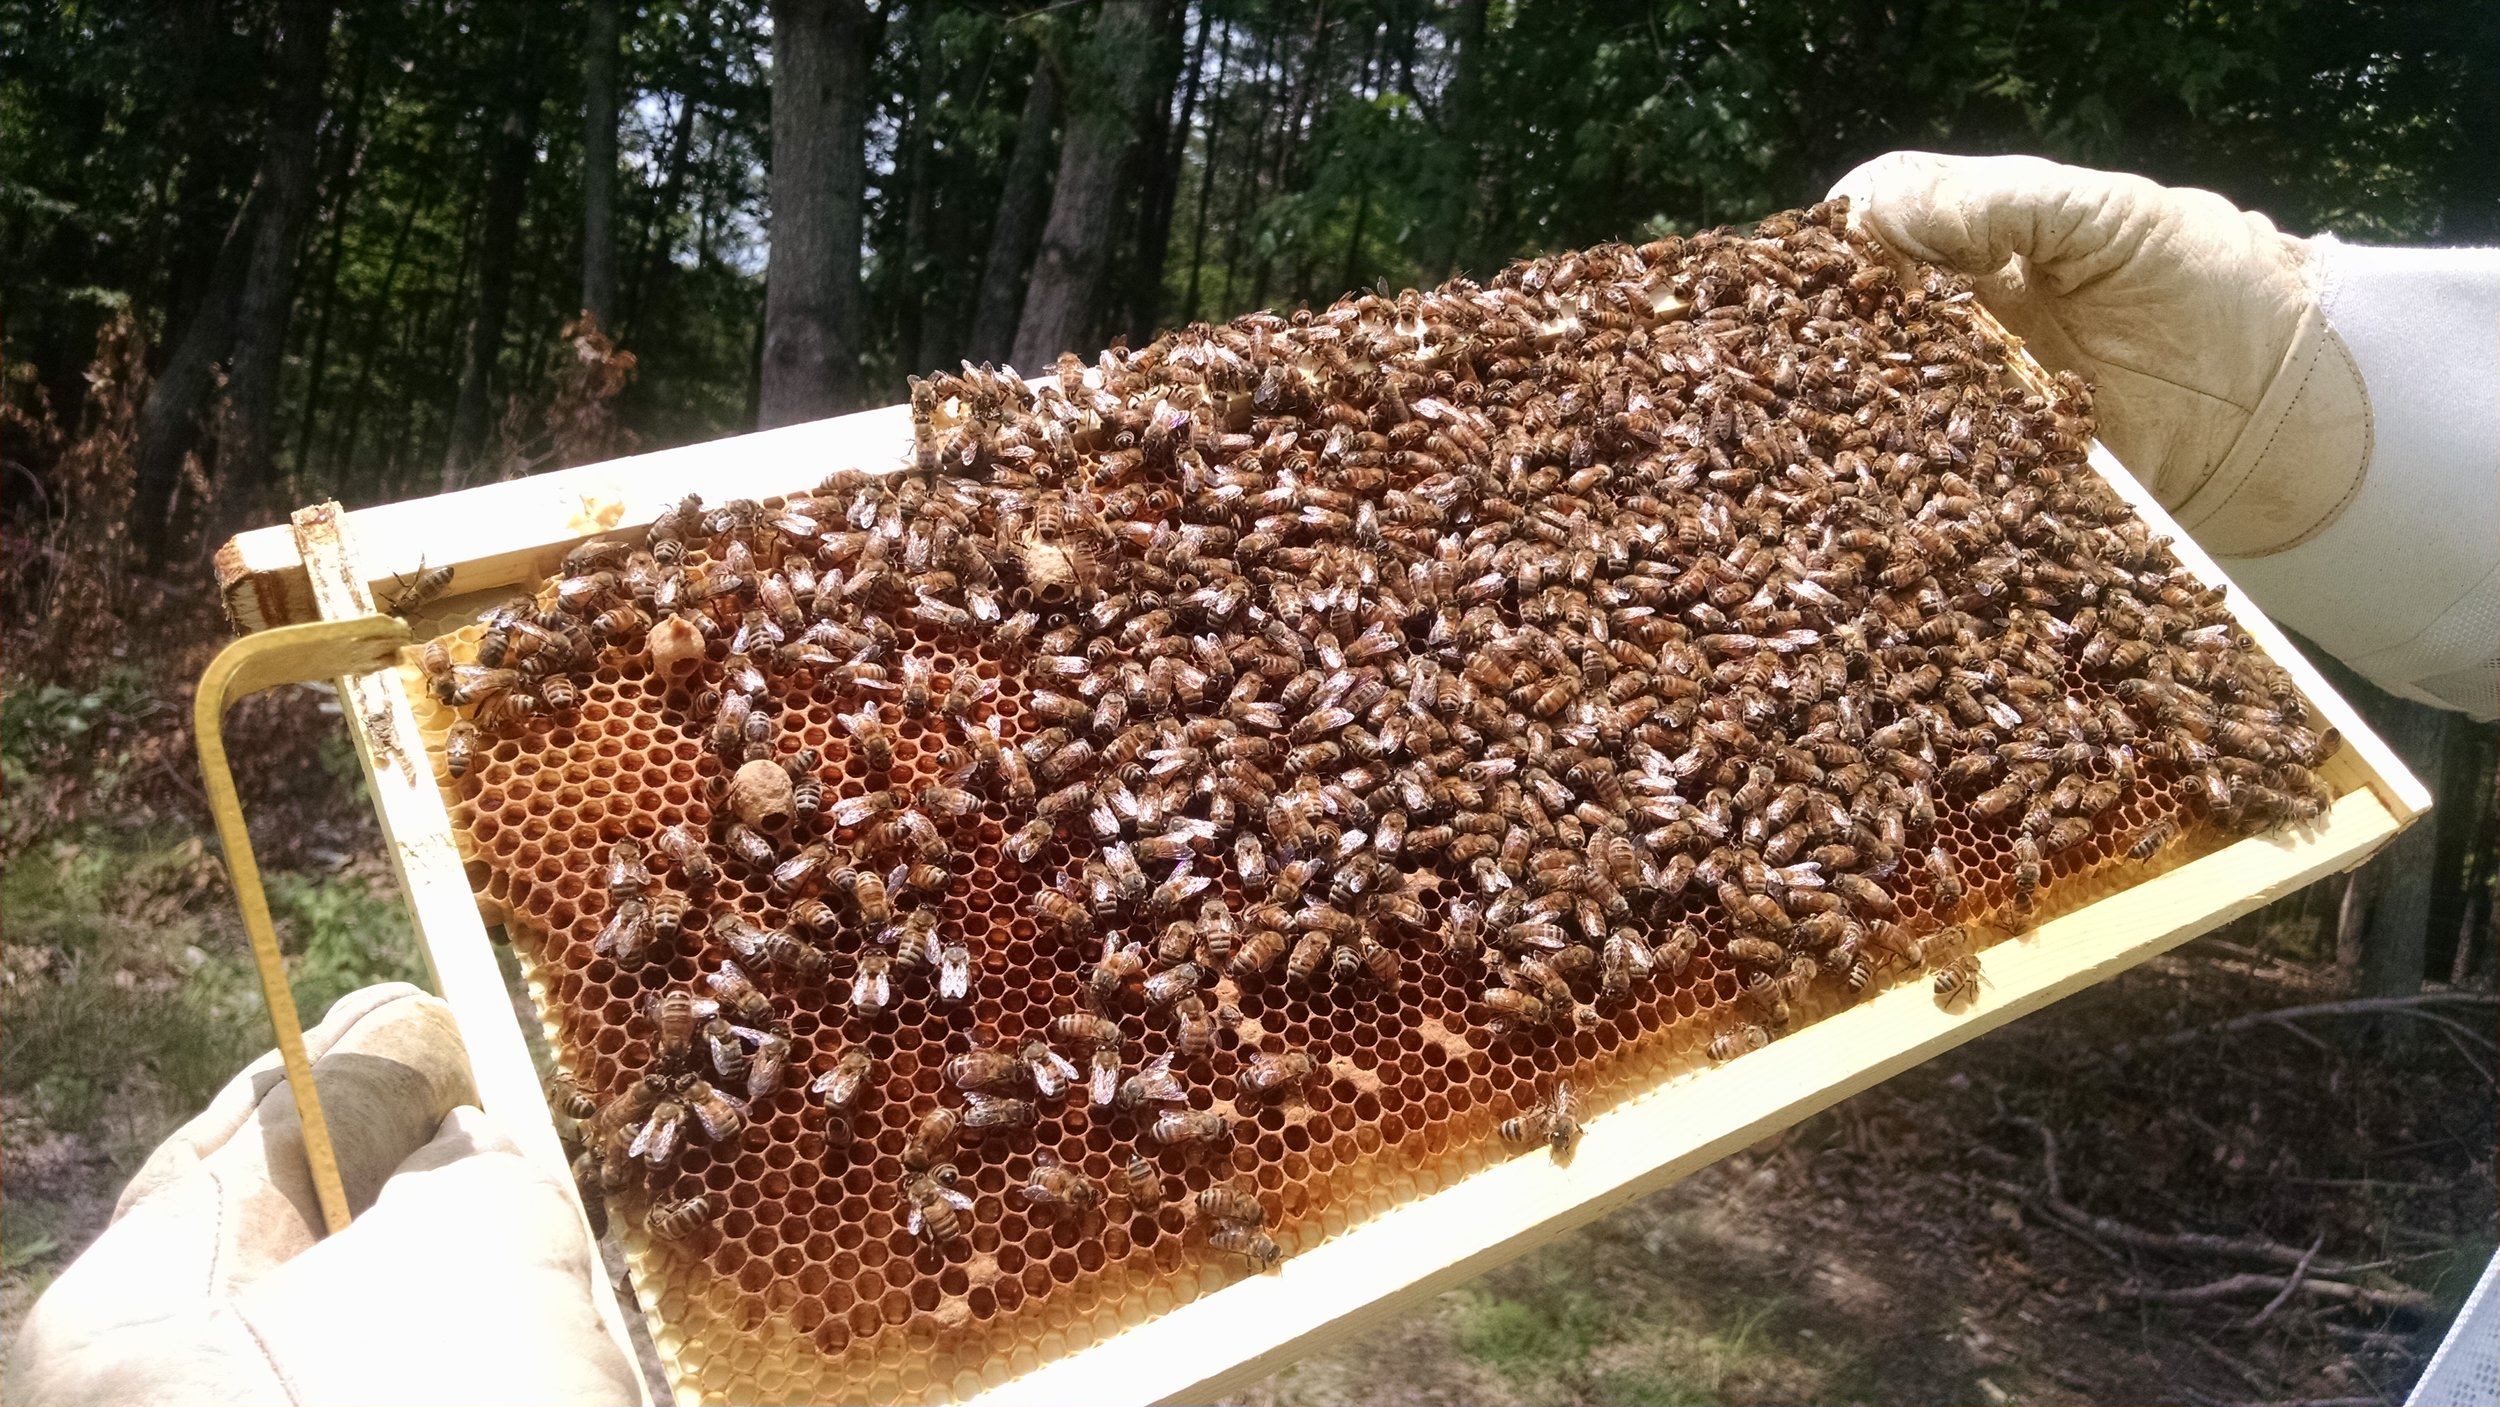 Spread the buzz! Be a beekeeper! -